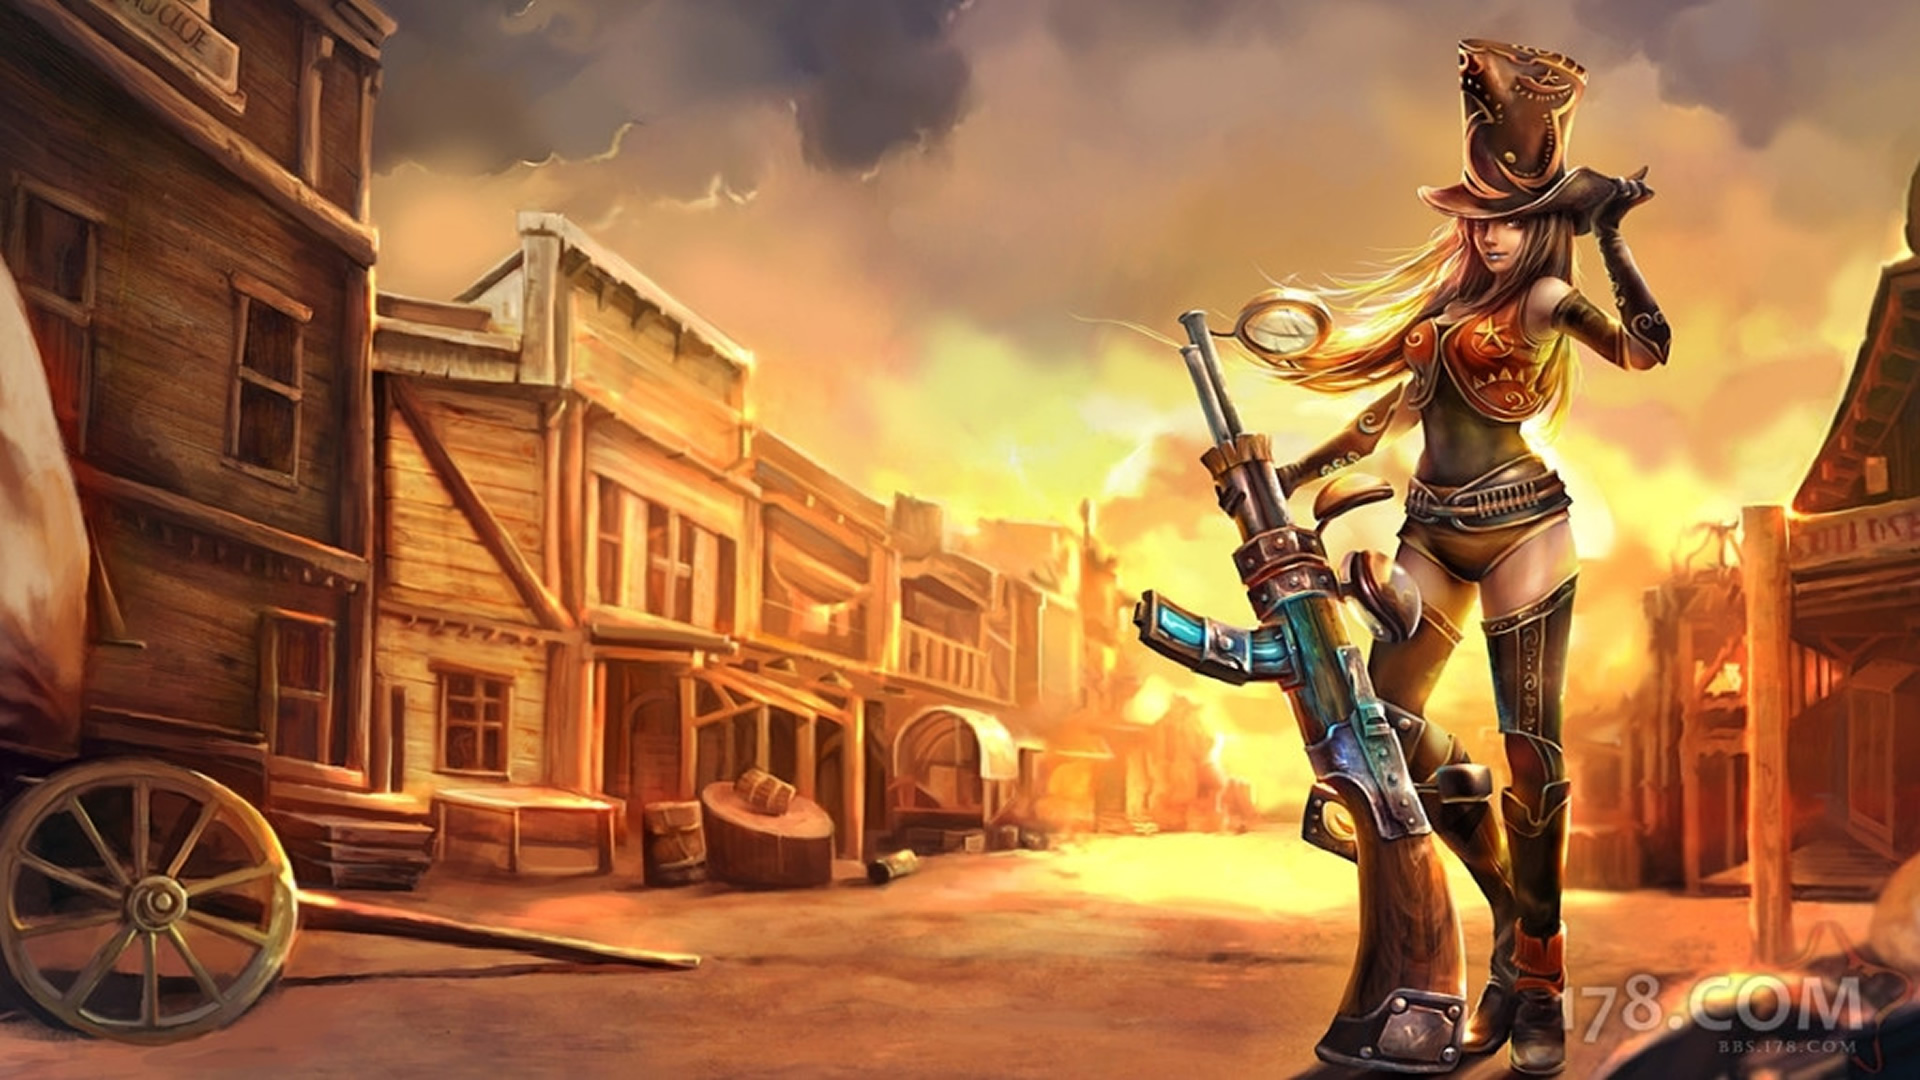 Sheriff Caitlyn Chinese Wallpaper - LeagueSplash